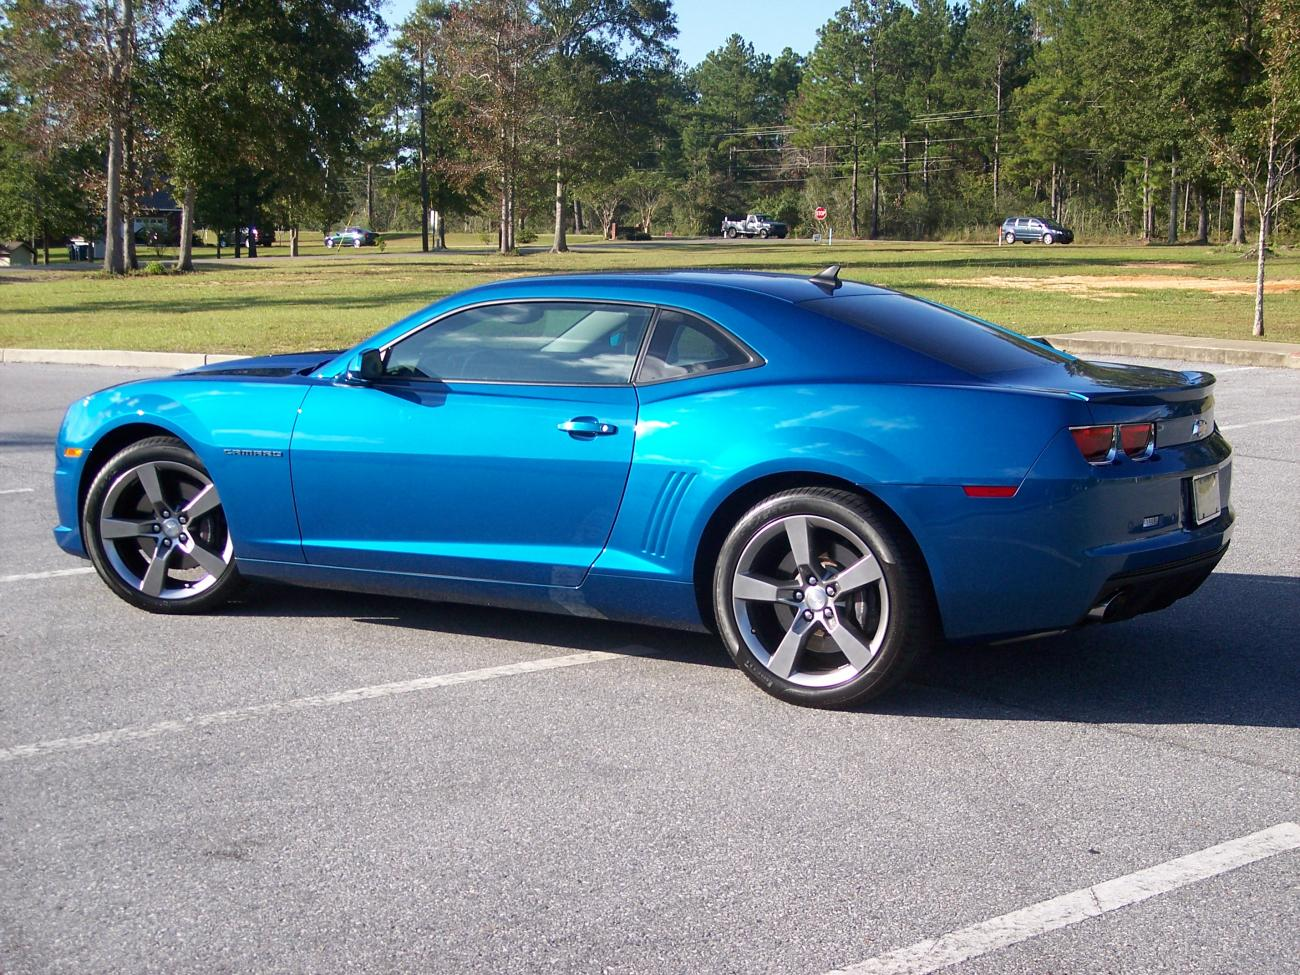 2010 2ss rs aqua blue metallic for sale camaro5 chevy. Black Bedroom Furniture Sets. Home Design Ideas